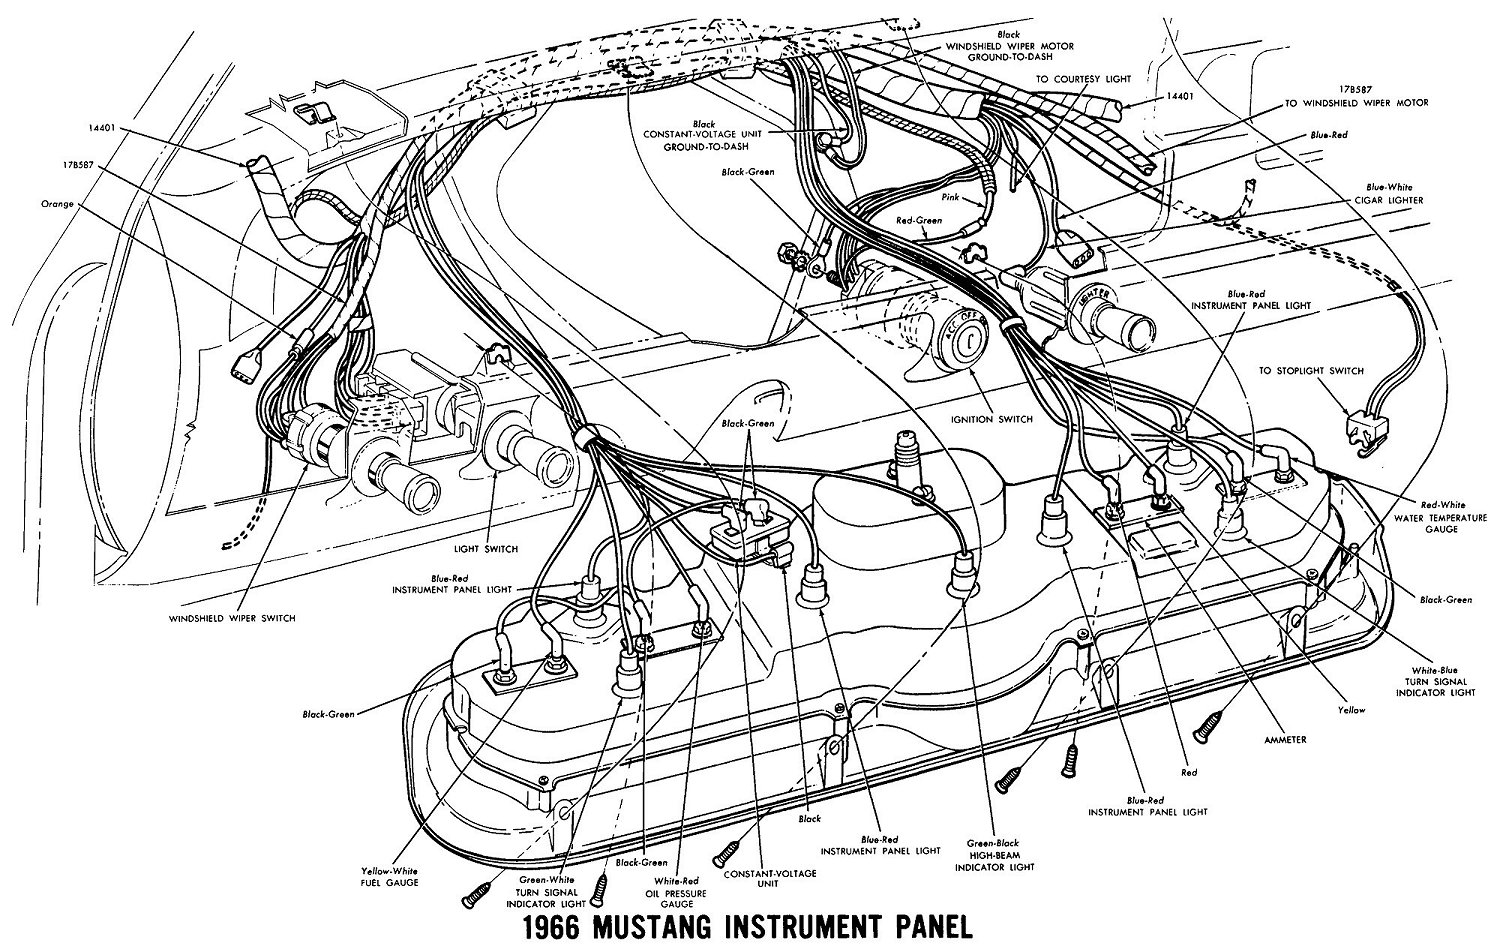 66instr 1966 mustang wiring diagrams average joe restoration 1966 mustang wiring harness kit at n-0.co